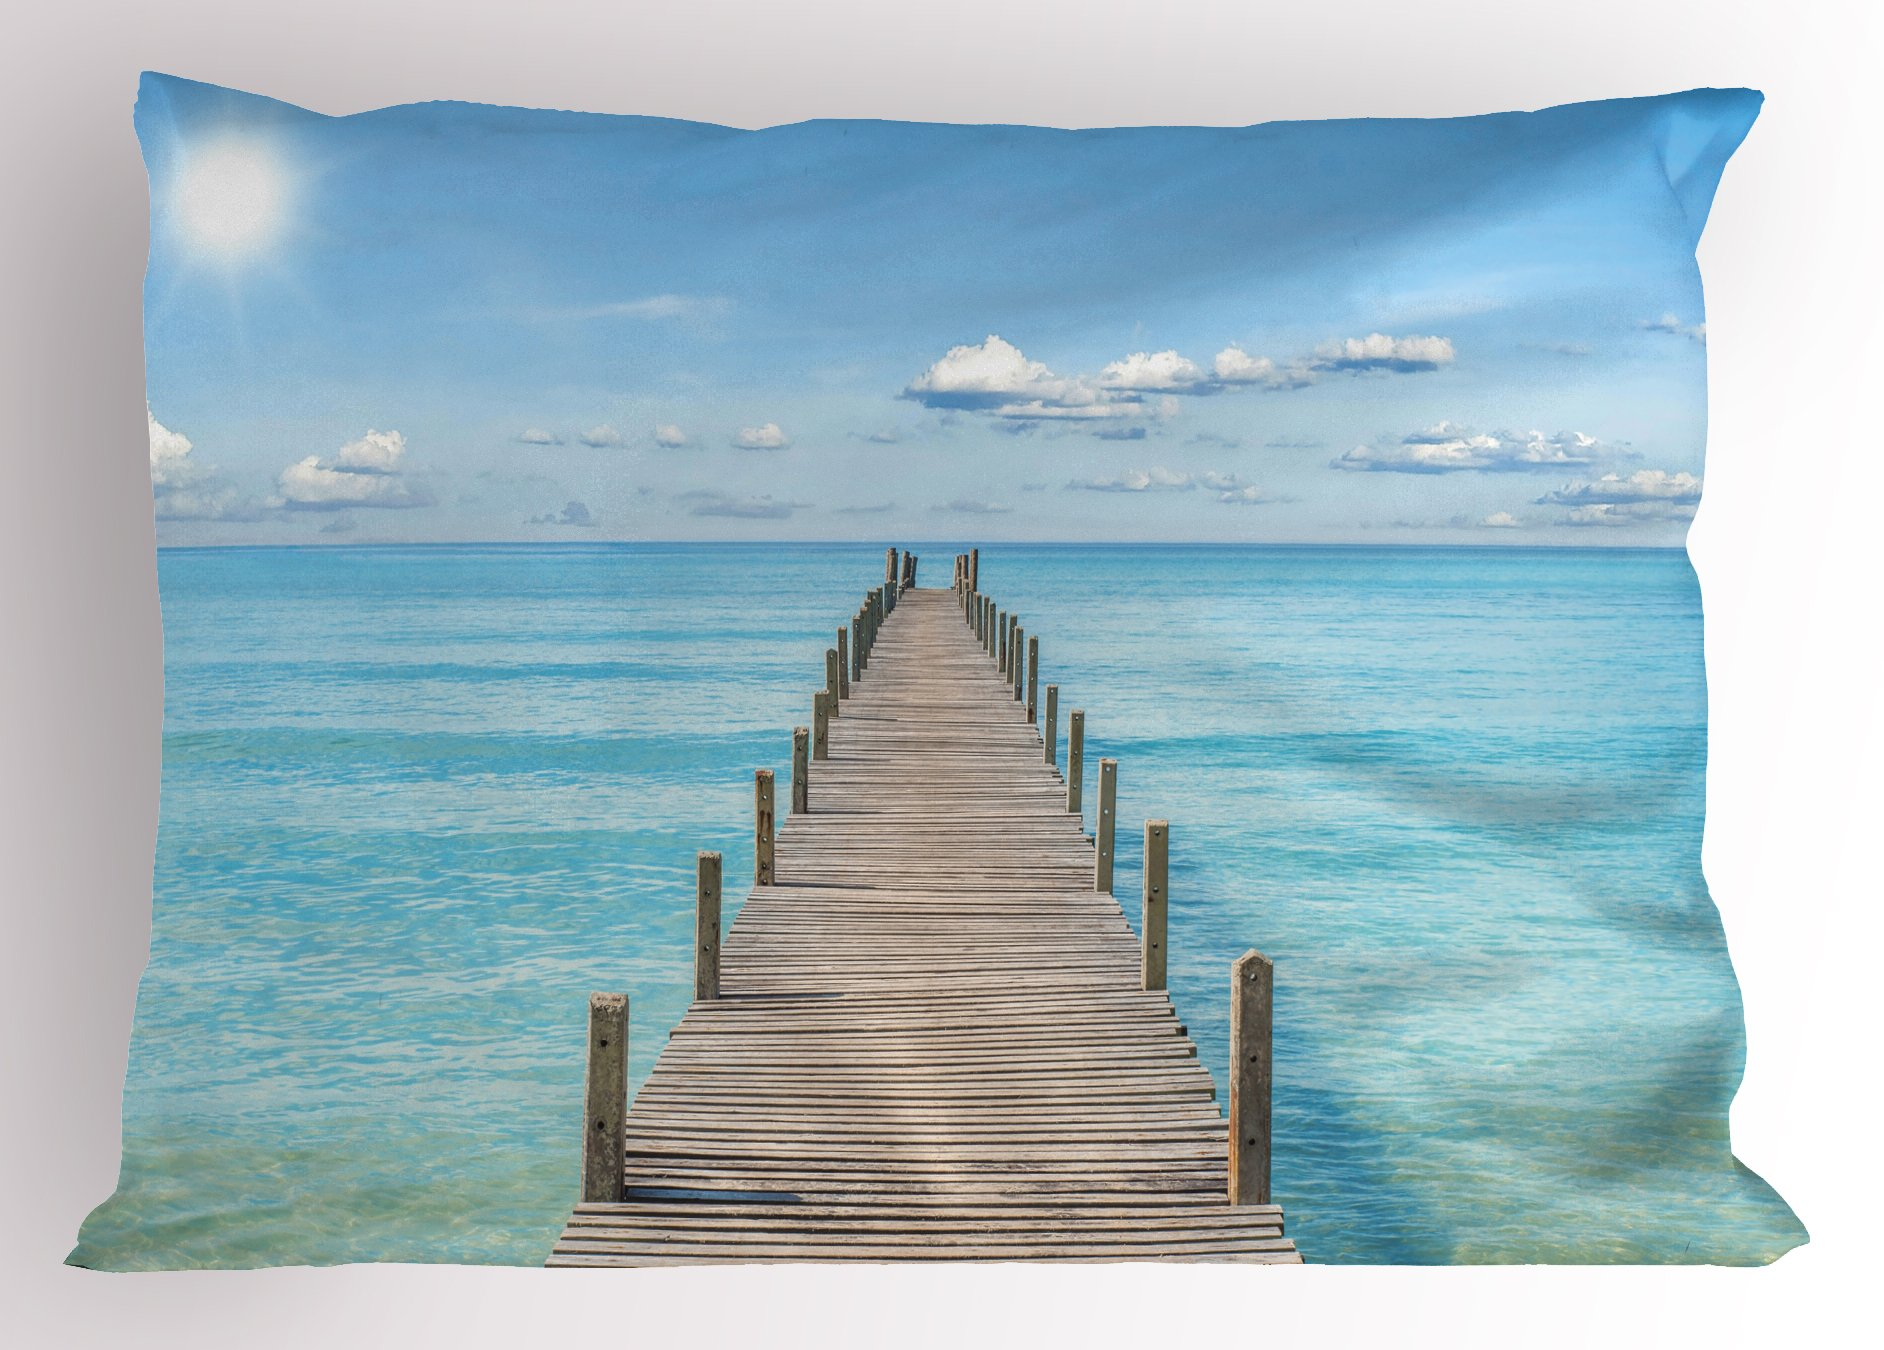 Lunarable Landscape Pillow Sham, Wood Pier Deck in Asian River Sky and Sun Summer Travel Theme Art Print, Decorative Standard King Size Printed Pillowcase, 36 X 20 inches, Blue Brown White by Lunarable (Image #1)